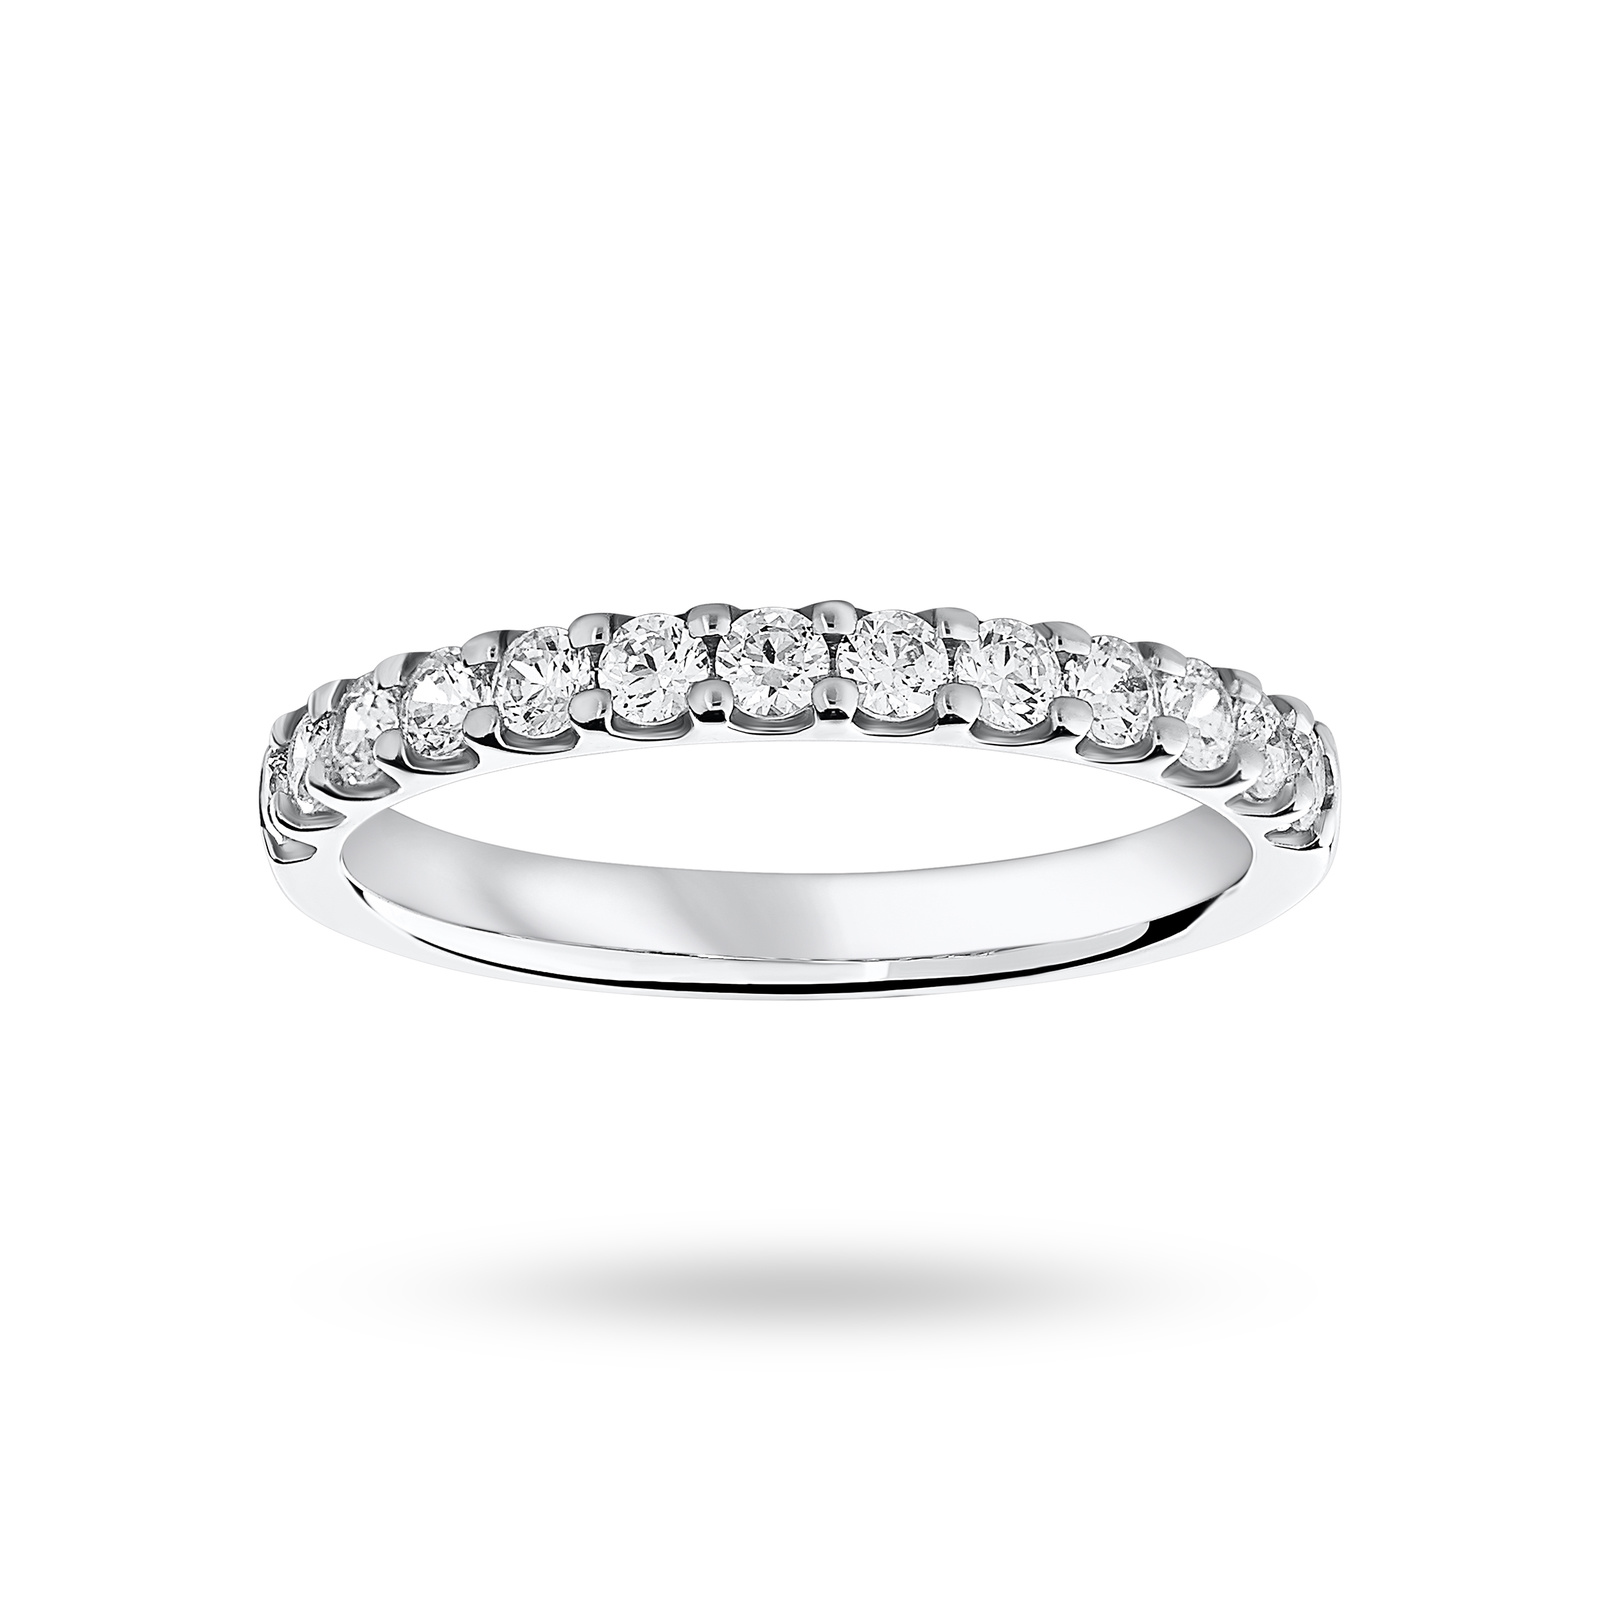 18 Carat White Gold 0.50 Carat Brilliant Cut Half Eternity